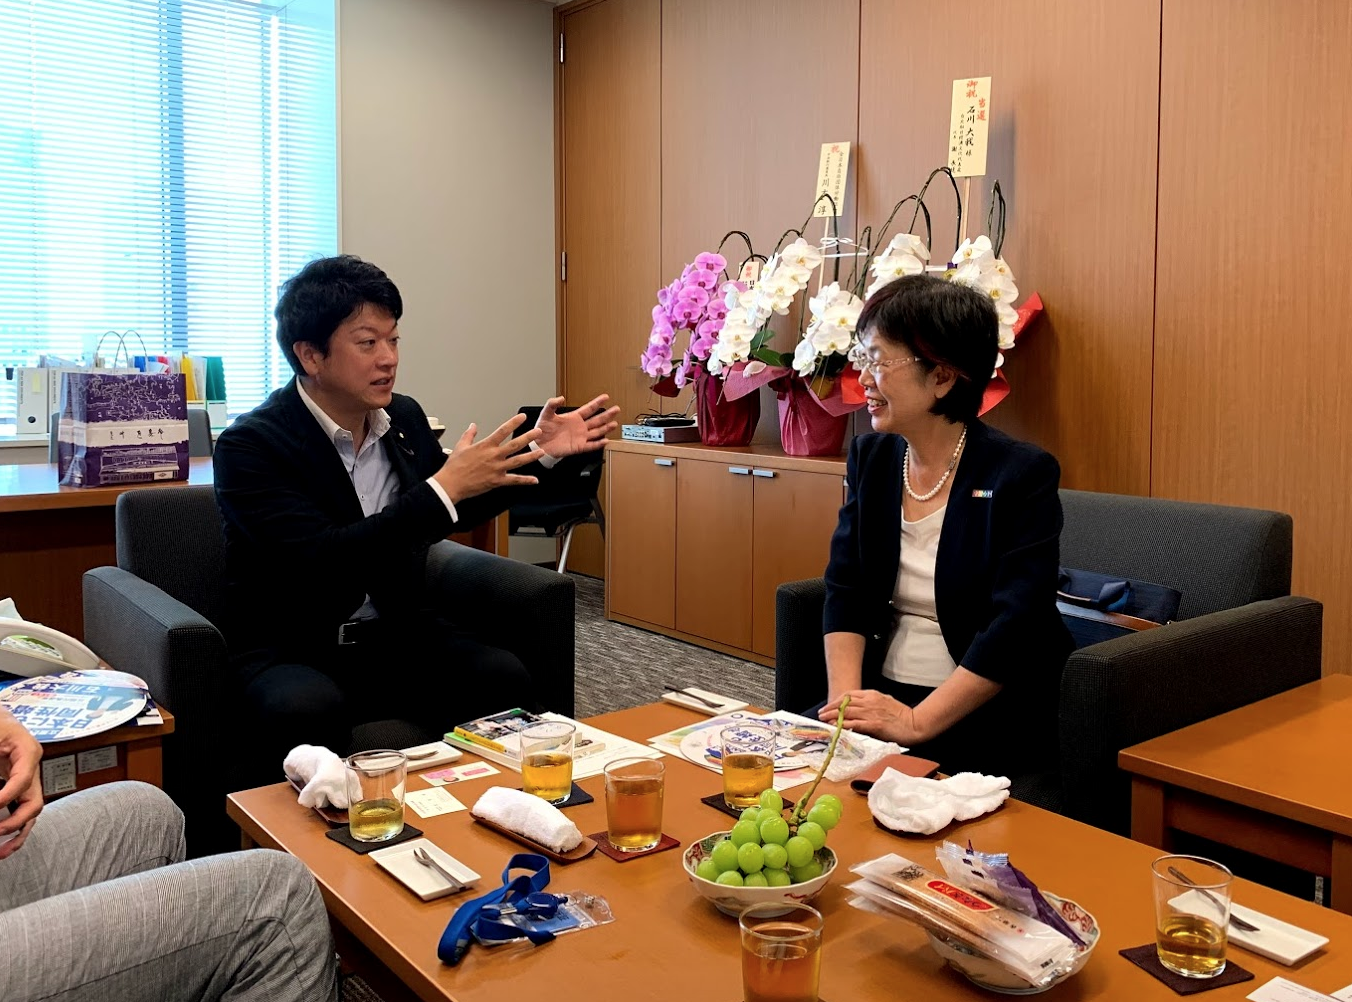 Taiga Ishikawa of Japan (left) meets with Yu Mei-Nu of Taiwan (right).  © Global Equality Caucus